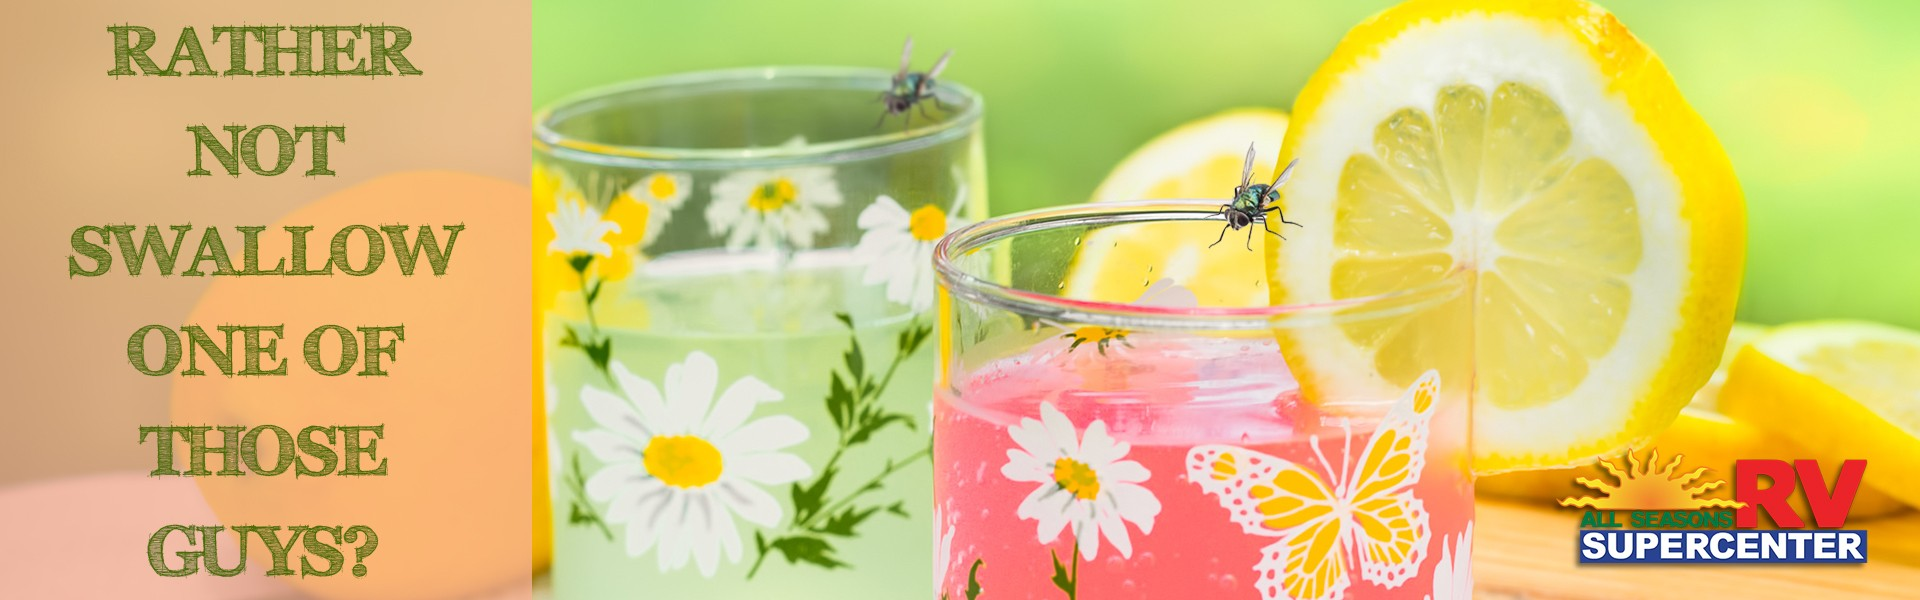 Bugs on lemonade glasses with caption of rather not swallow one of those guys?